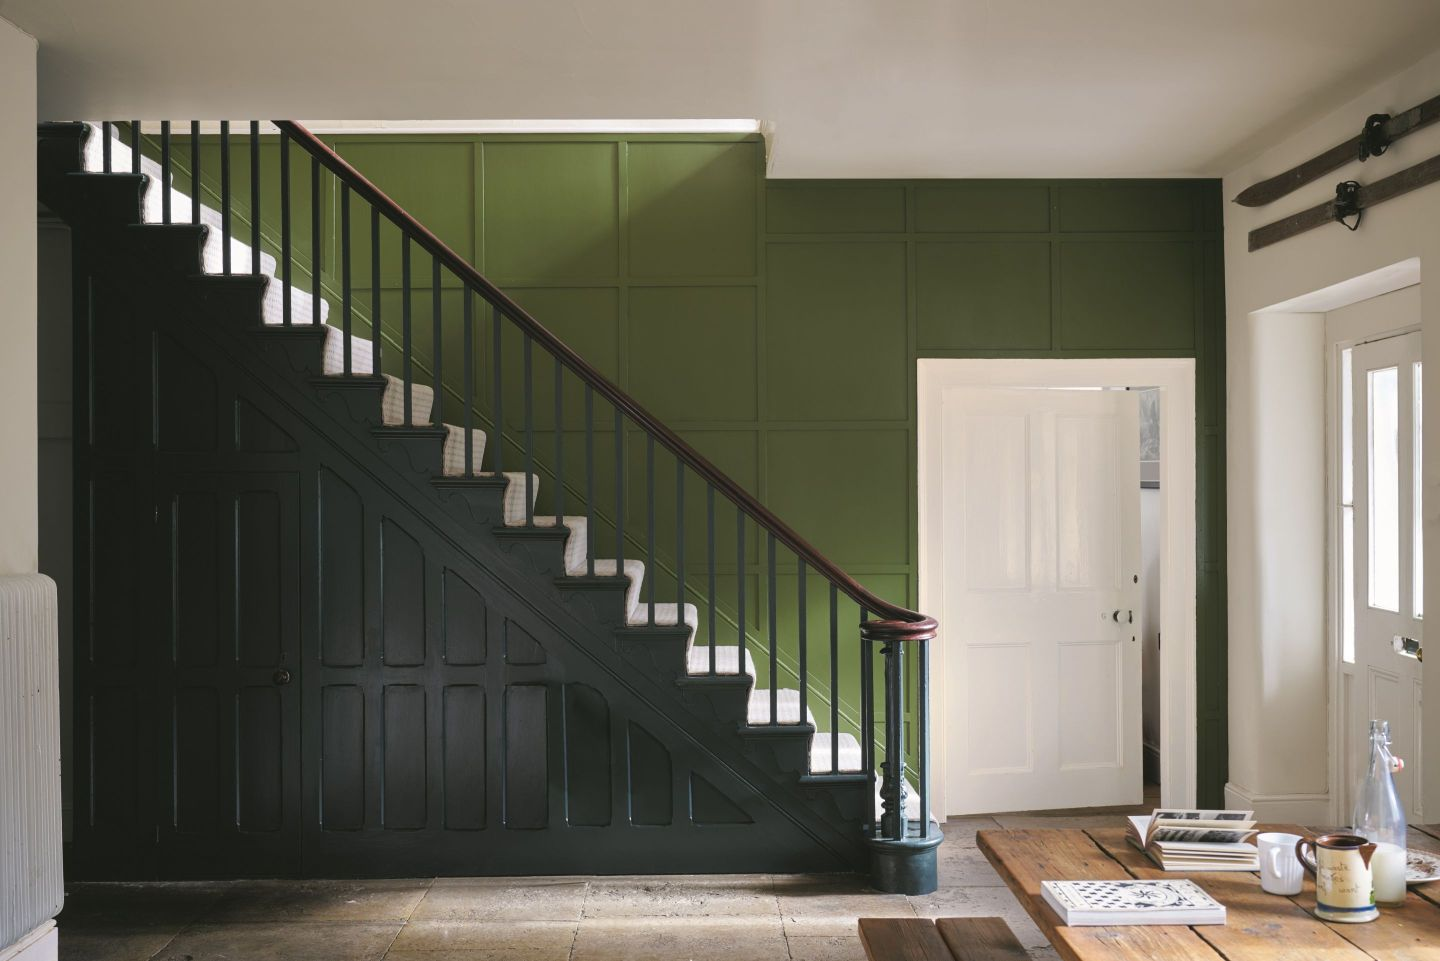 FarrowBall_3251509_FarrowBallNewColours2018.jpg-1440x961 Paint Inspiration: 20 Colorful Rooms We Love